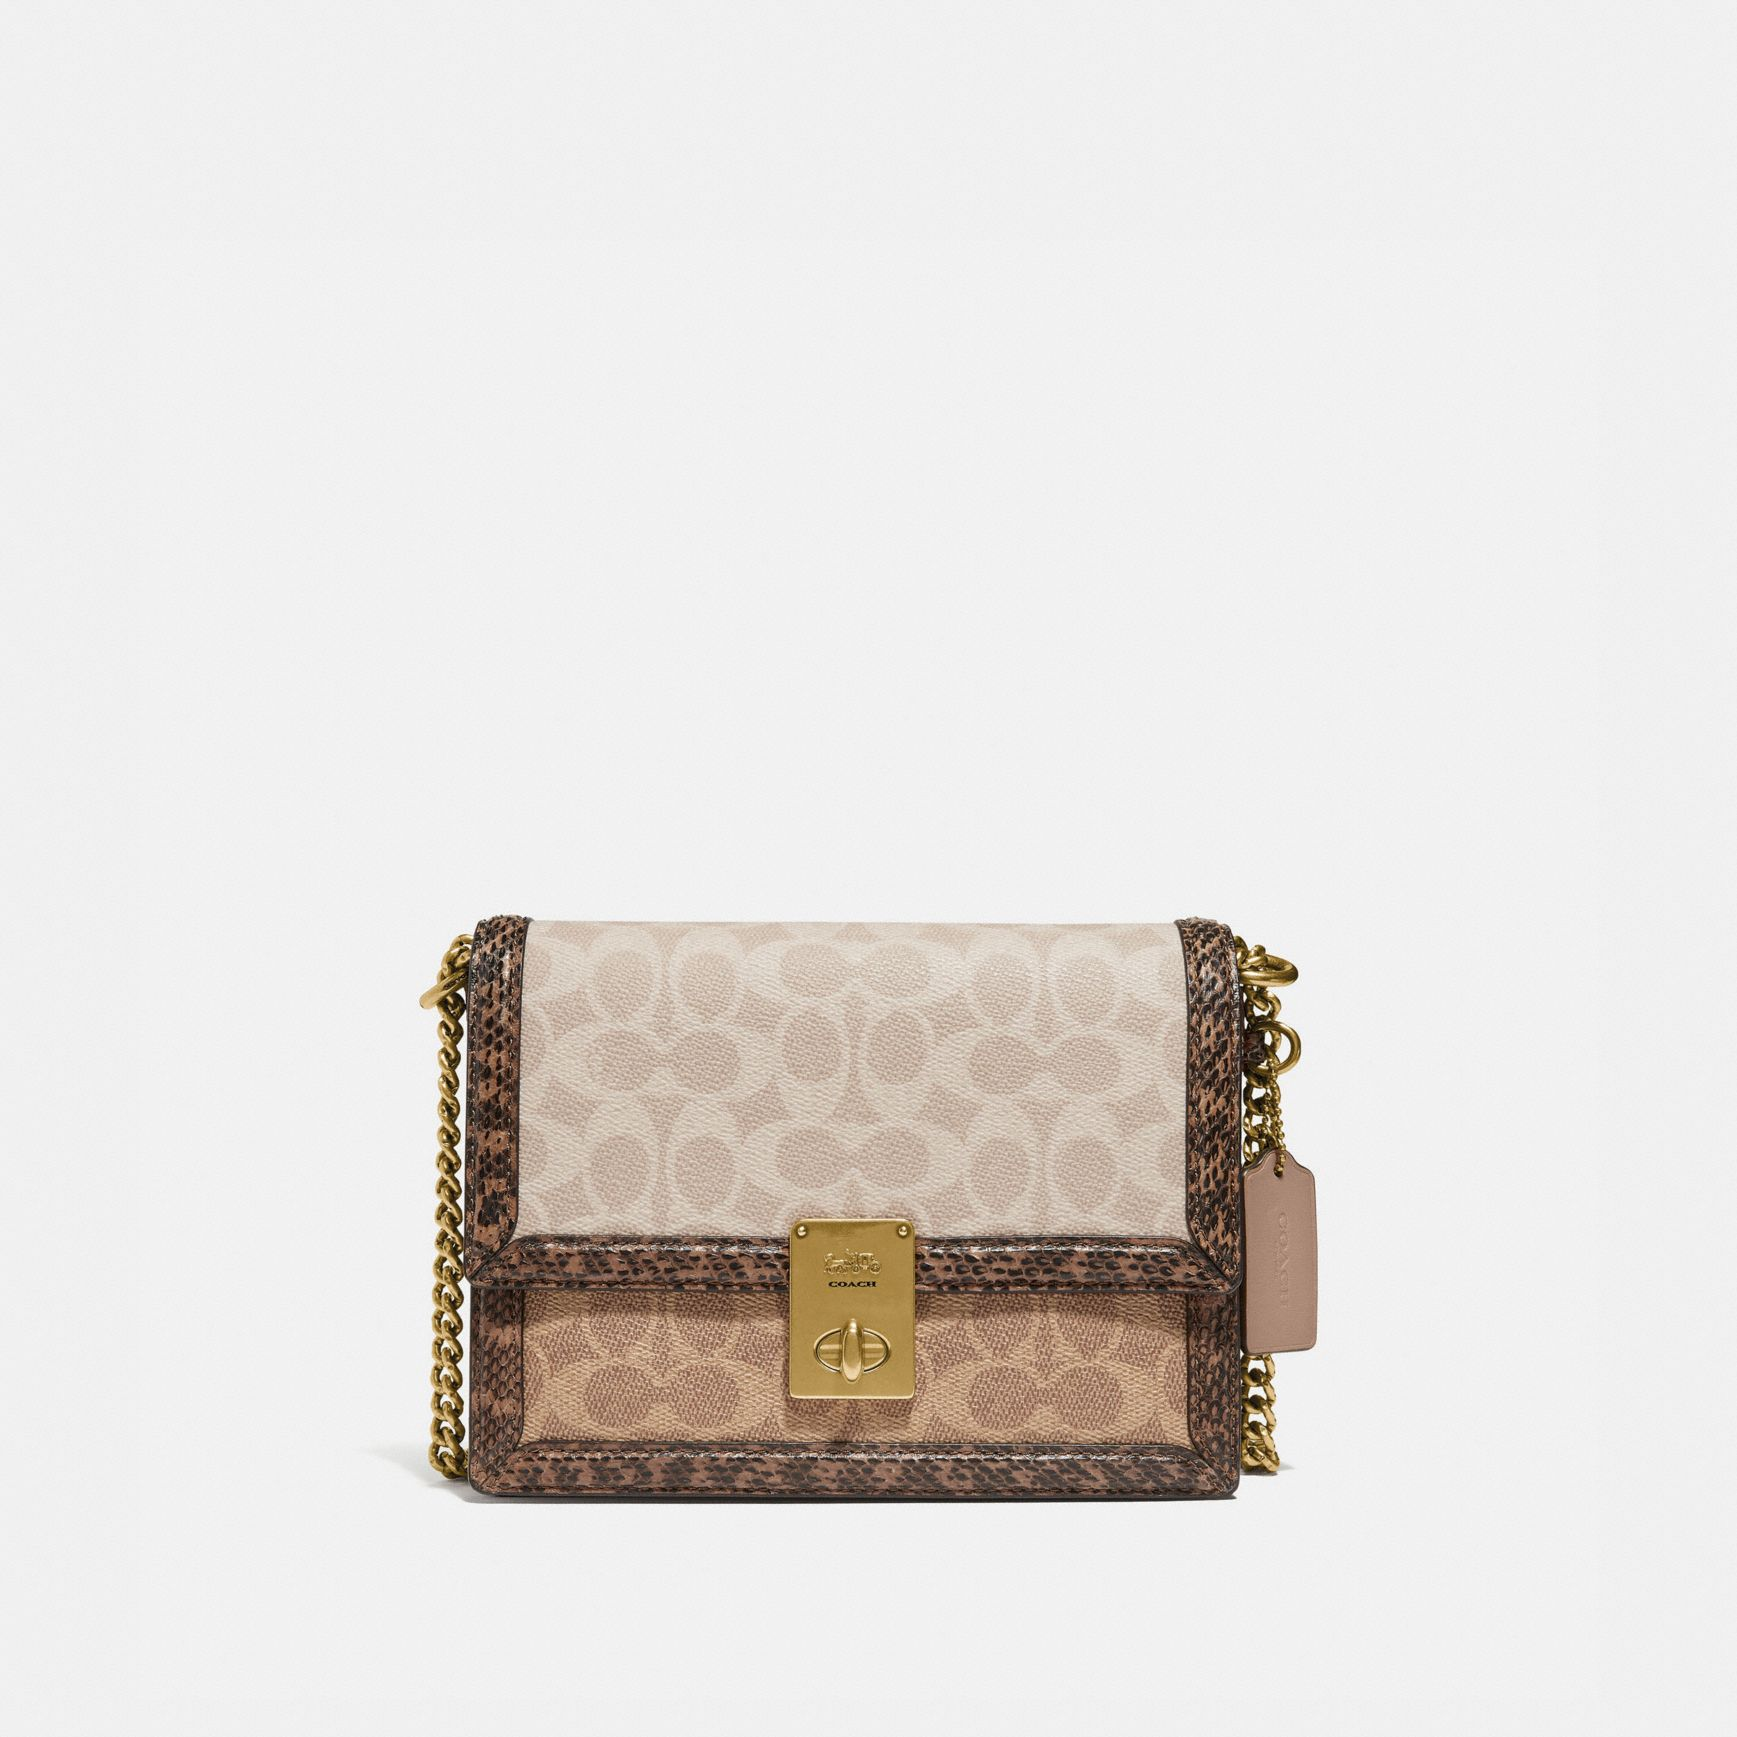 COACH HUTTON SHOULDER BAG IN BLOCKED SIGNATURE CANVAS WITH SNAKESKIN DETAIL HKD 5,950